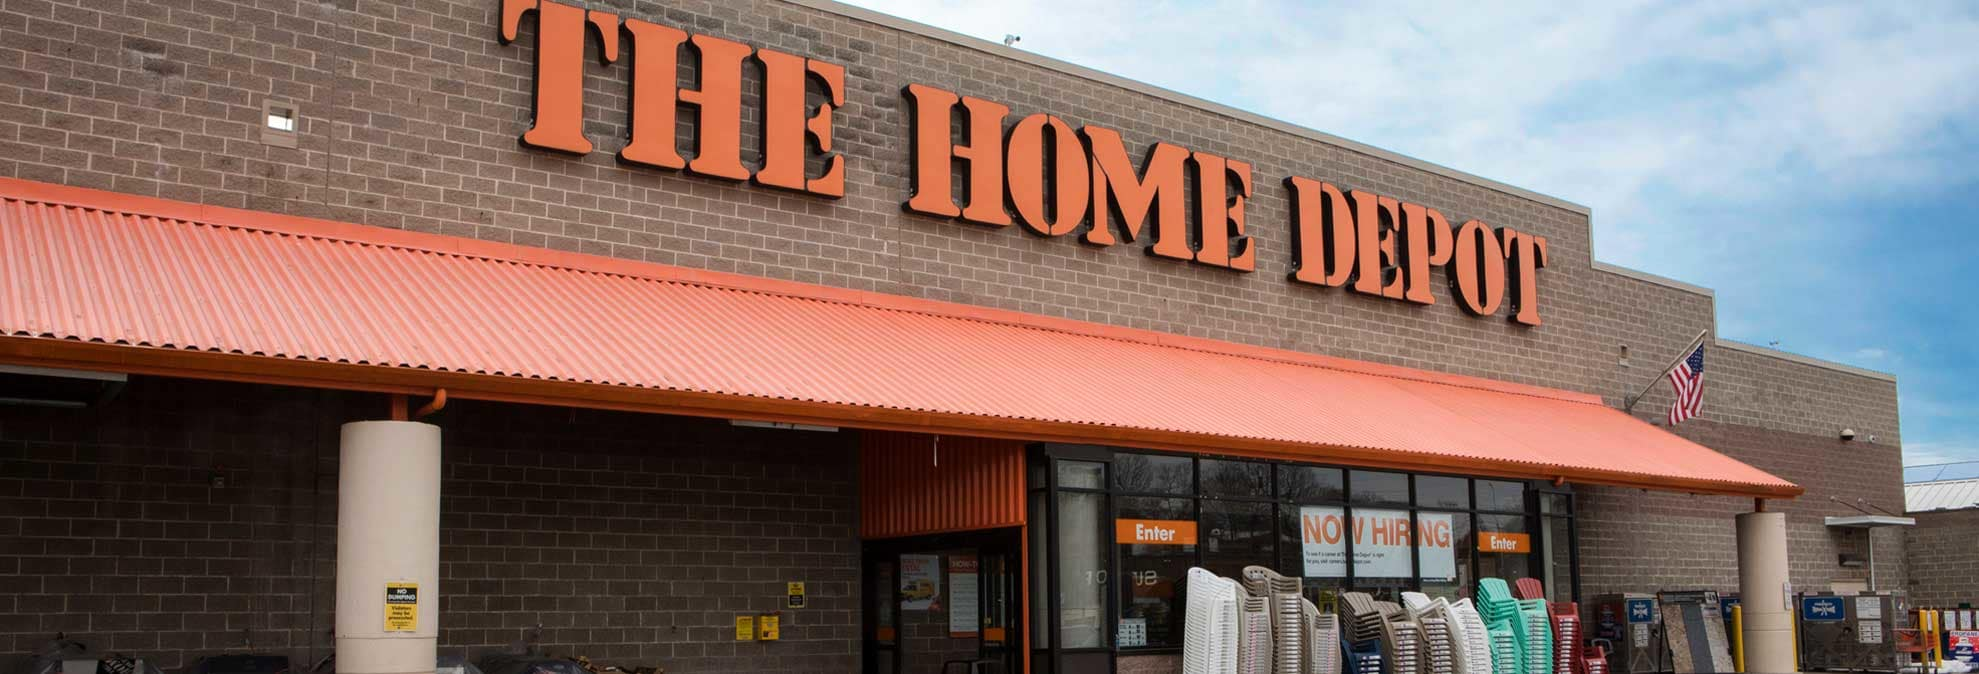 Home Depot Data Leak Consumer Privacy Protection